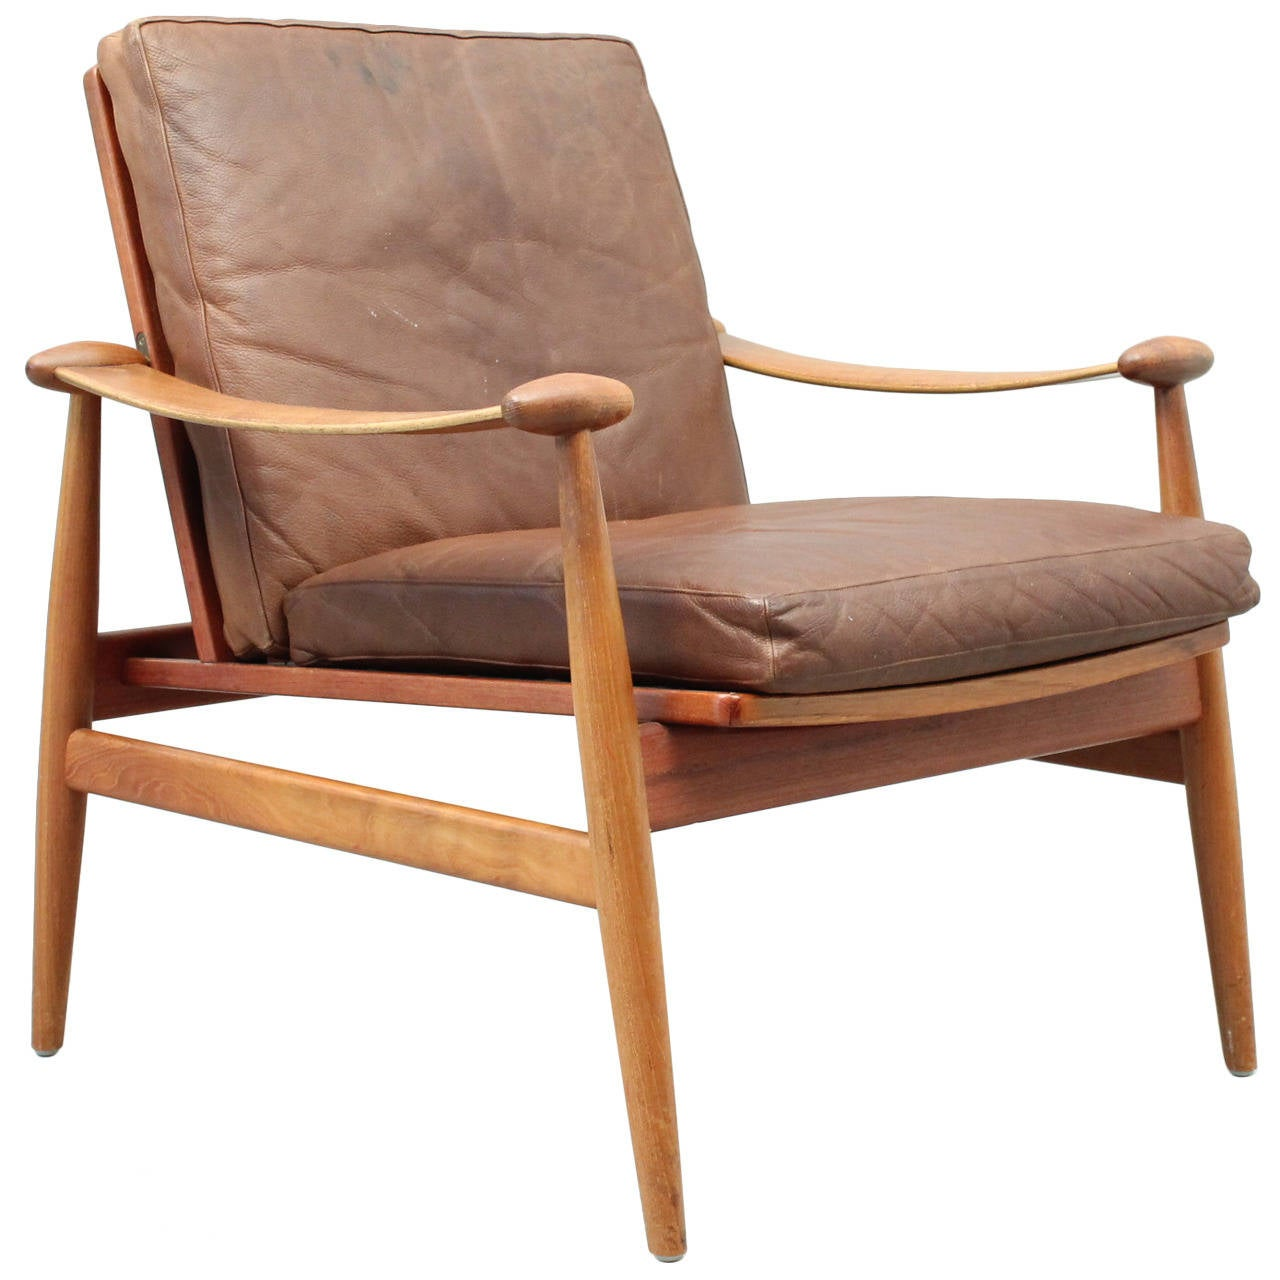 Finn Juhl Spade Chair Fd133 With Brown Leather Danish Mid Century Modern For Sale At 1stdibs